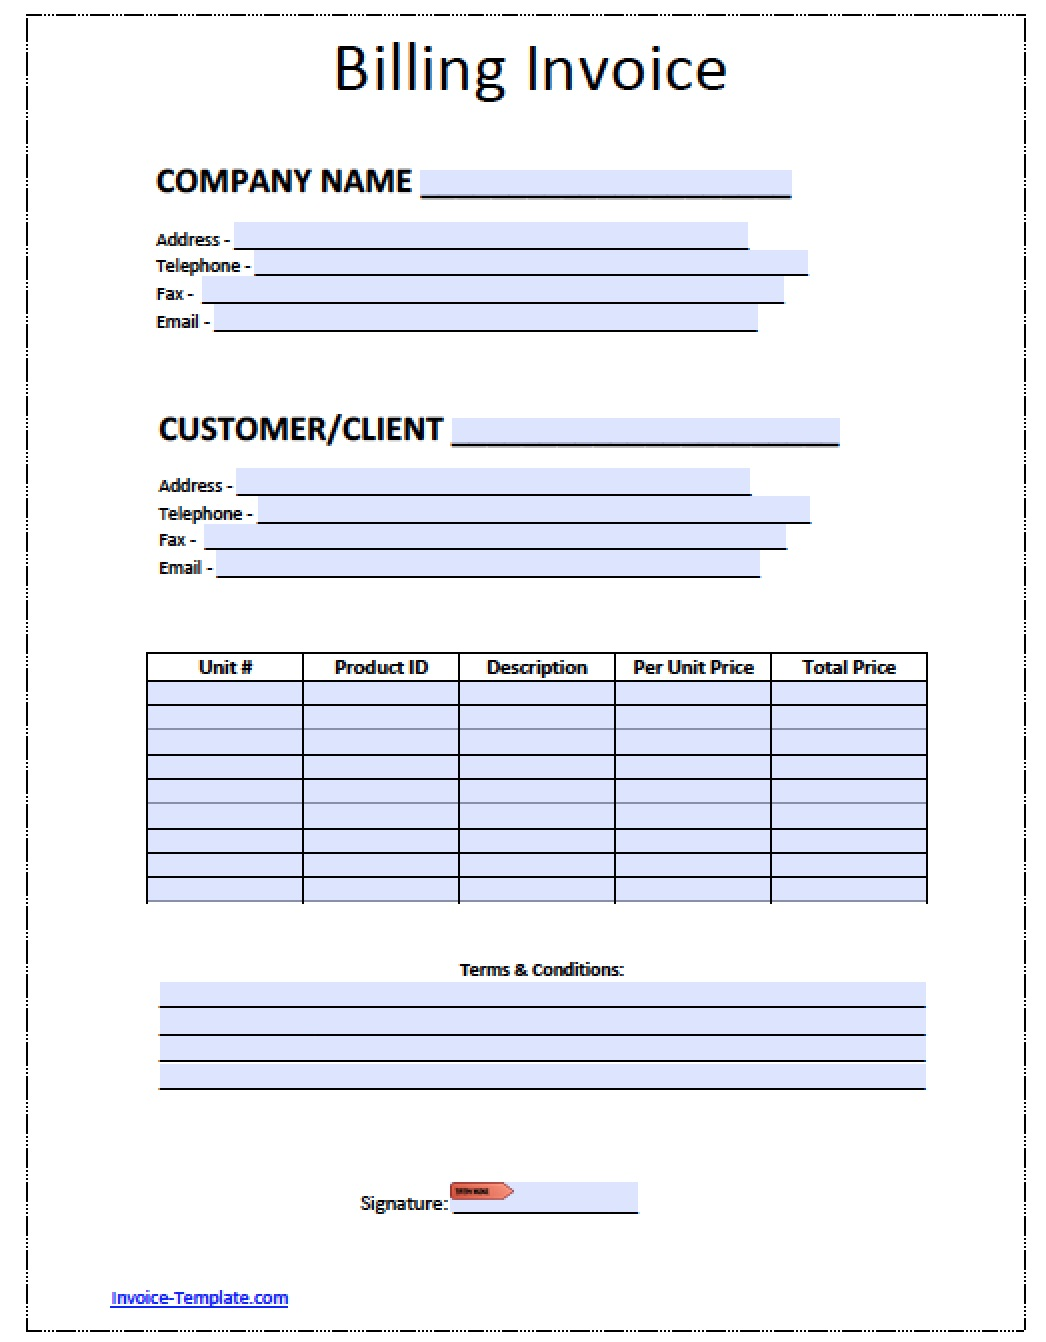 Sandiegolocksmithsus  Inspiring Billing Invoice Invoices Faq U Cloudflare Support Billing  With Inspiring Free Billing Invoice Template  Excel  Pdf  Word Doc  Billing With Delightful Receipt Generator Free Also Lic Online Receipt In Addition Free Printable Sales Receipt And Legal Receipt As Well As Neat Receipts Software Download Windows  Additionally Excel Cash Receipt Template From Happytomco With Sandiegolocksmithsus  Inspiring Billing Invoice Invoices Faq U Cloudflare Support Billing  With Delightful Free Billing Invoice Template  Excel  Pdf  Word Doc  Billing And Inspiring Receipt Generator Free Also Lic Online Receipt In Addition Free Printable Sales Receipt From Happytomco